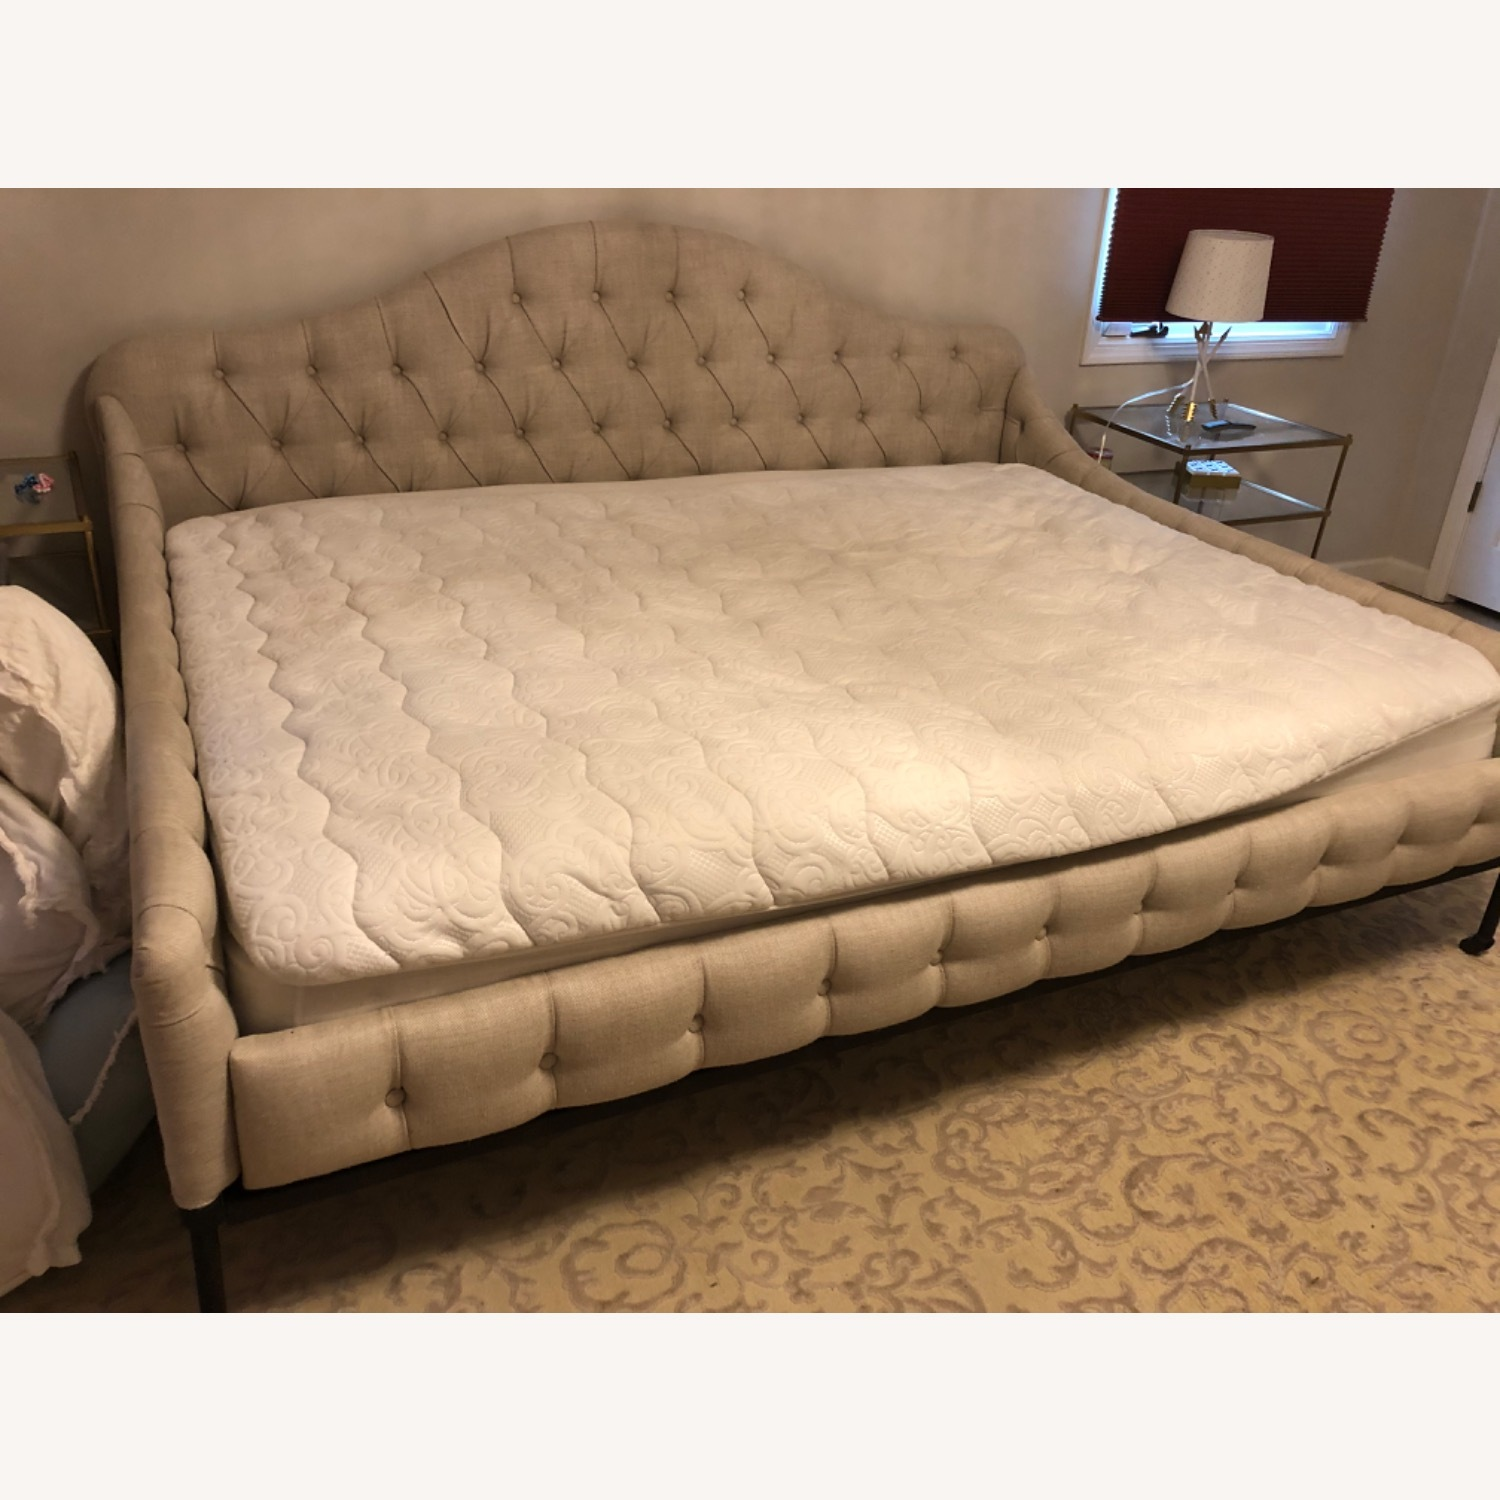 Restoration Hardware Queen Daybed - image-2